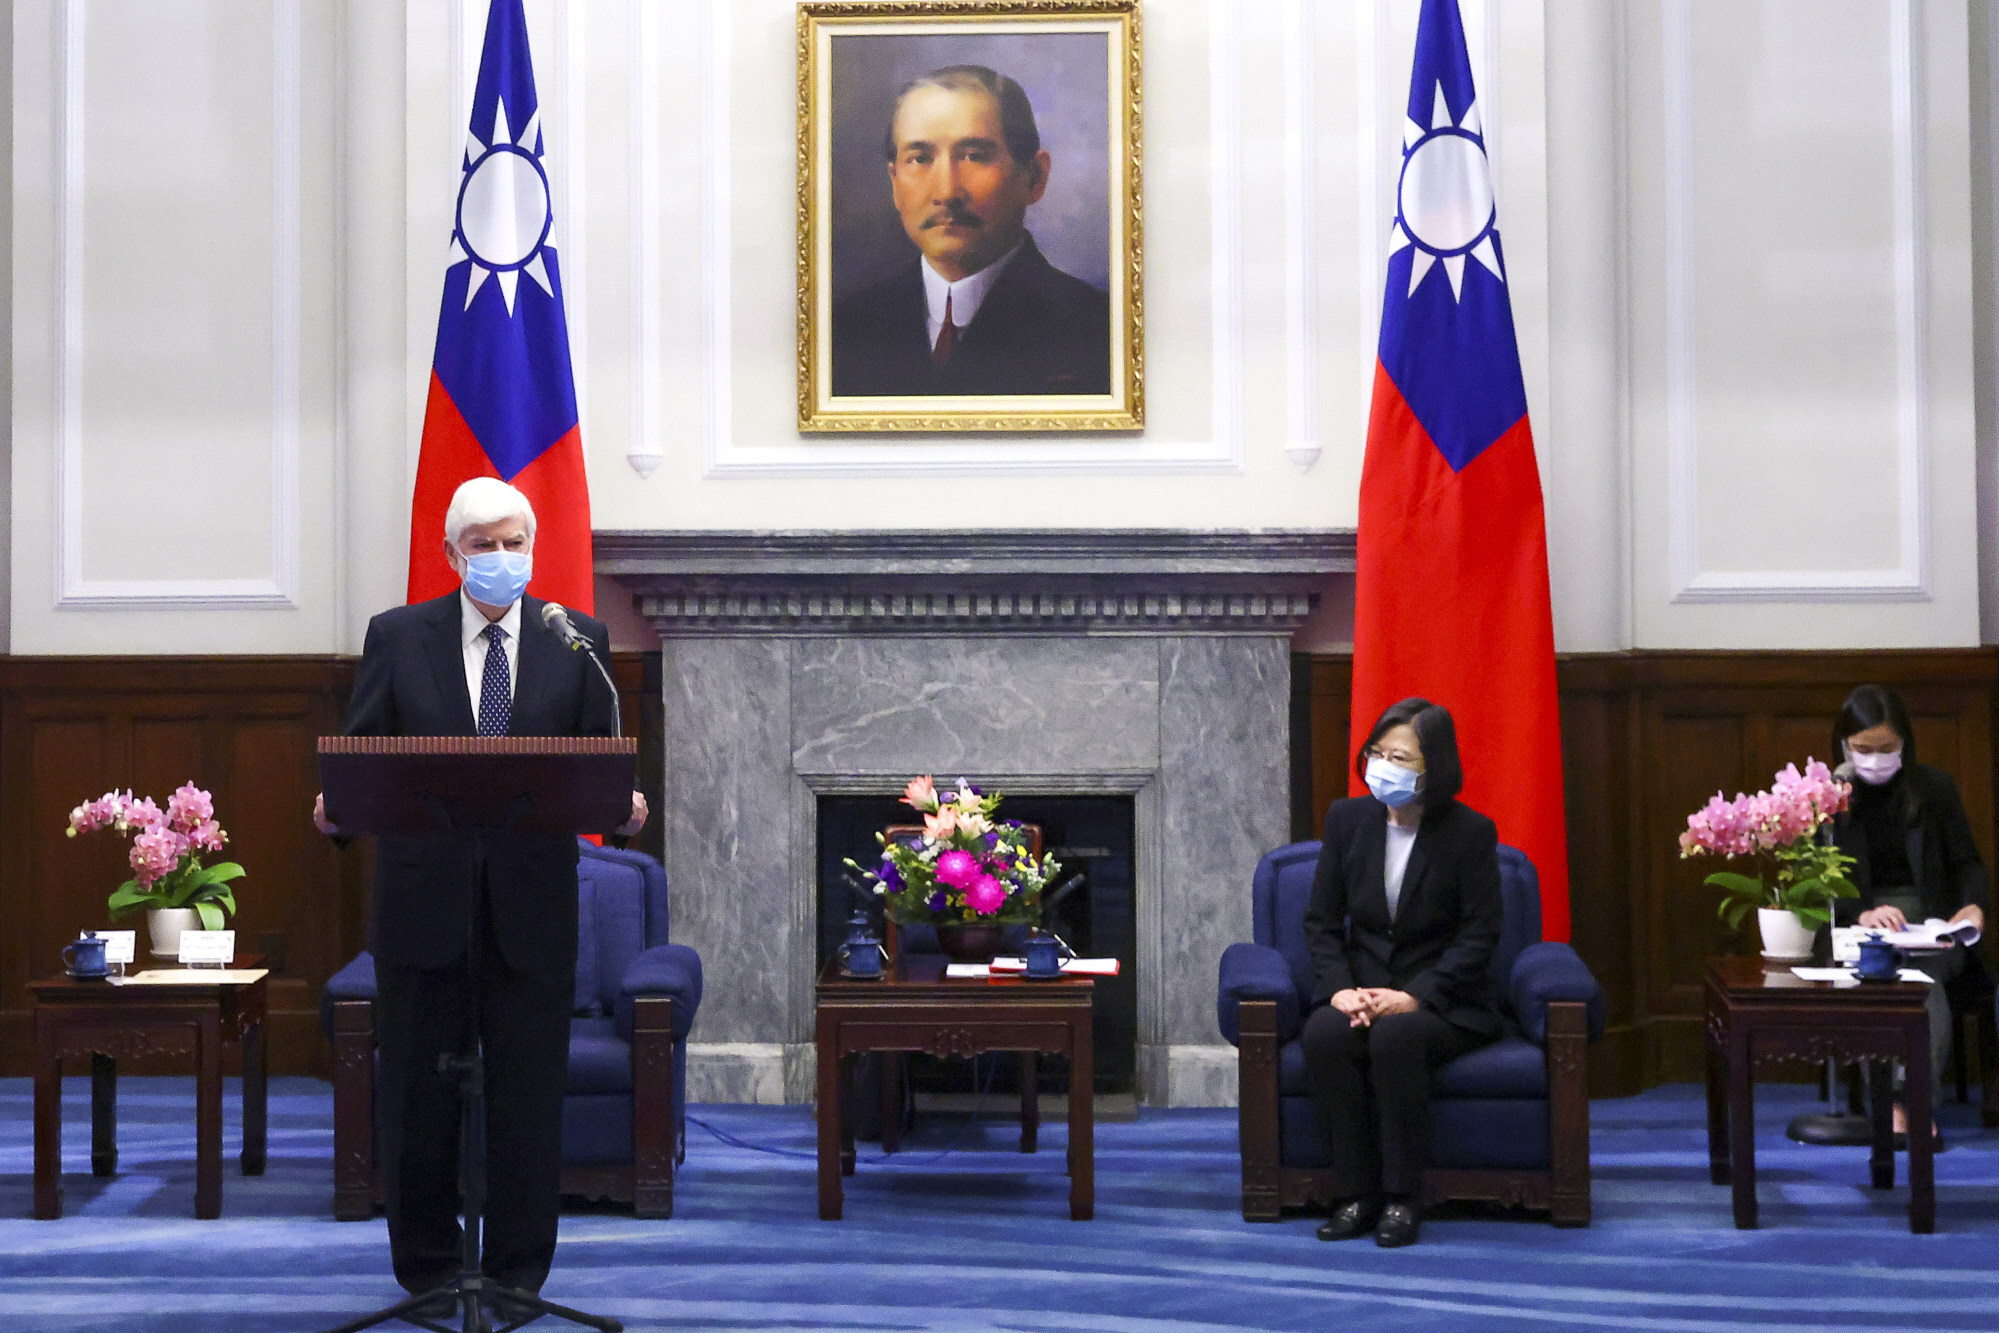 US emissary Chris Dodd speaks at the meeting with Taiwanese President Tsai Ing-wen in Taipei. Photo: Reuters